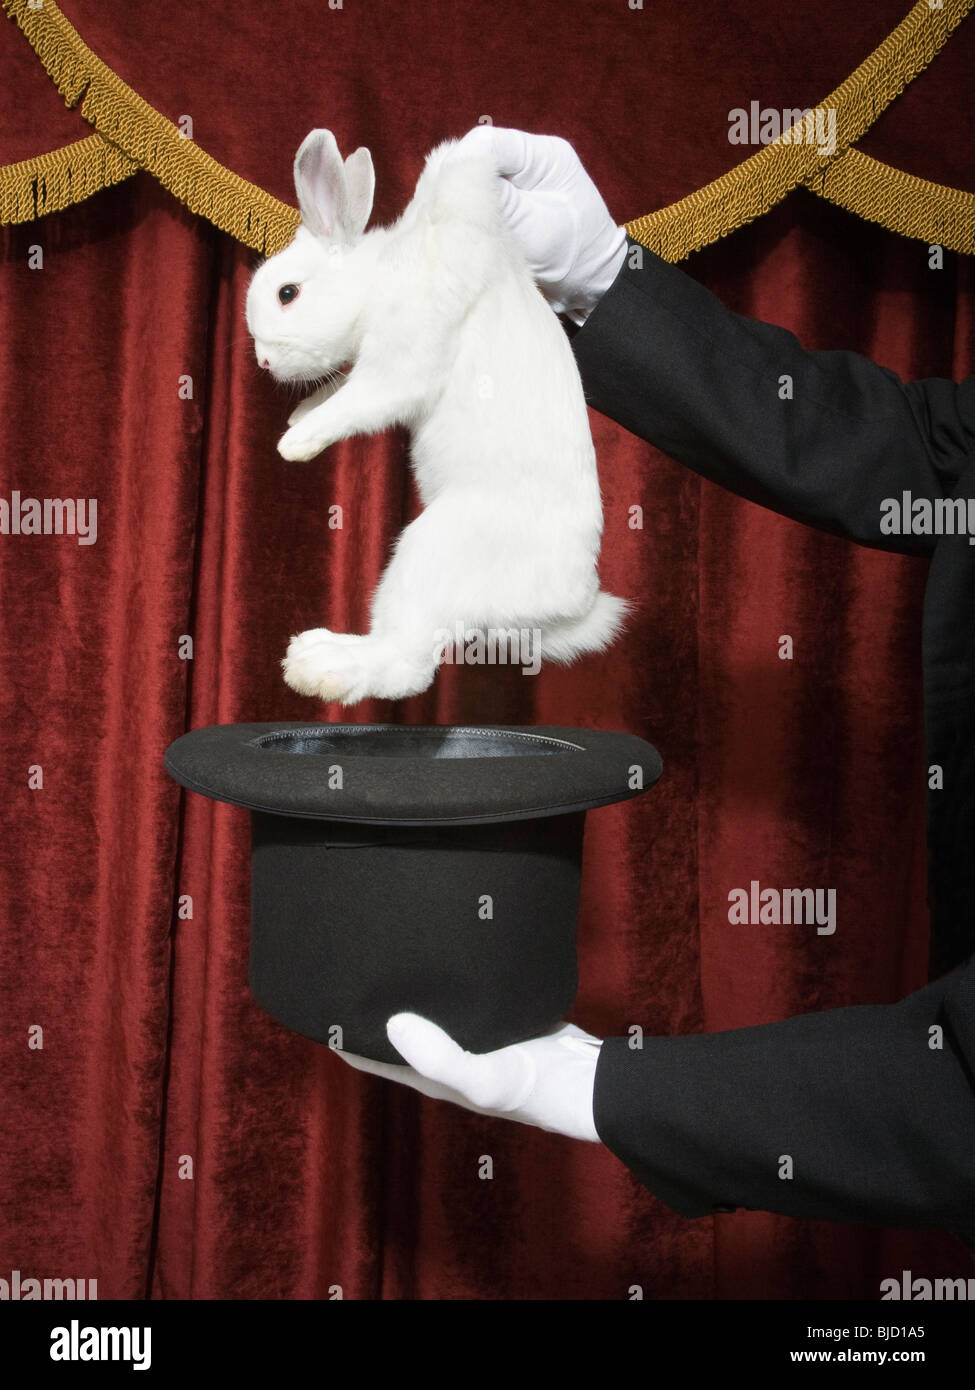 Out Of The Shadows Deviant Moon Tarot: Magician Pulling A Rabbit Out Of A Hat Stock Photo